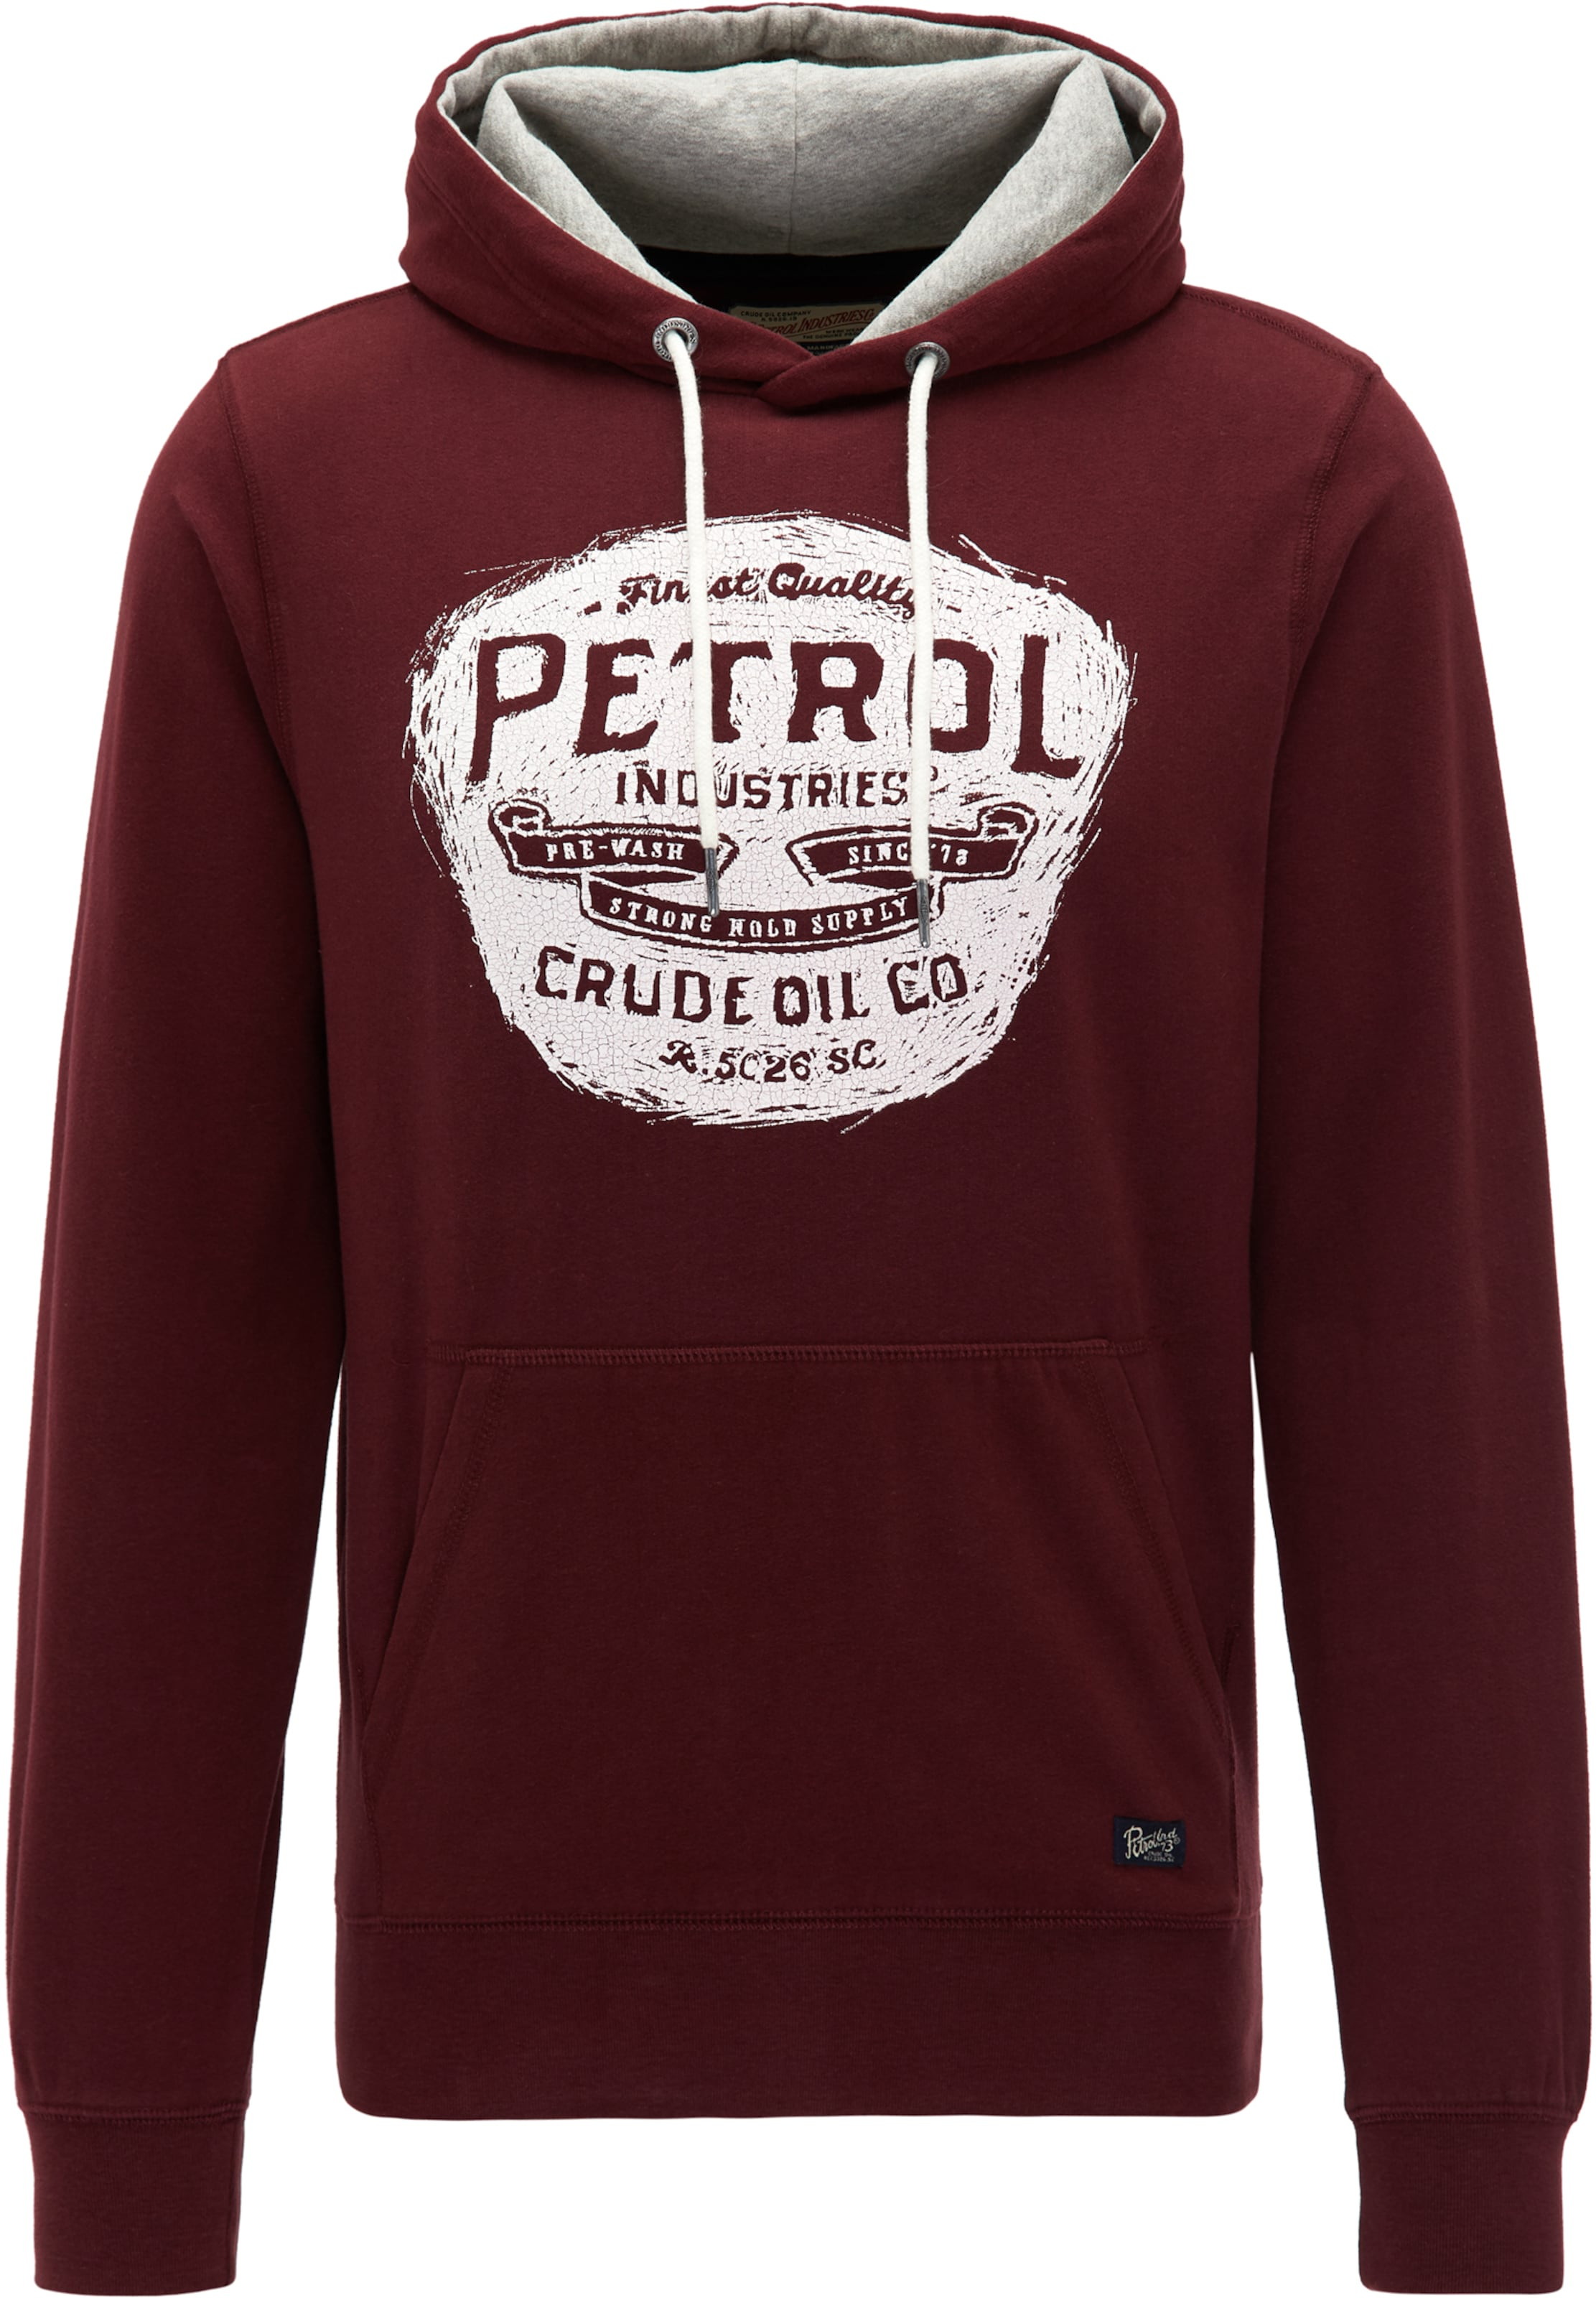 Foncé En shirt Rouge Industries Petrol Sweat 3jq5AcL4RS